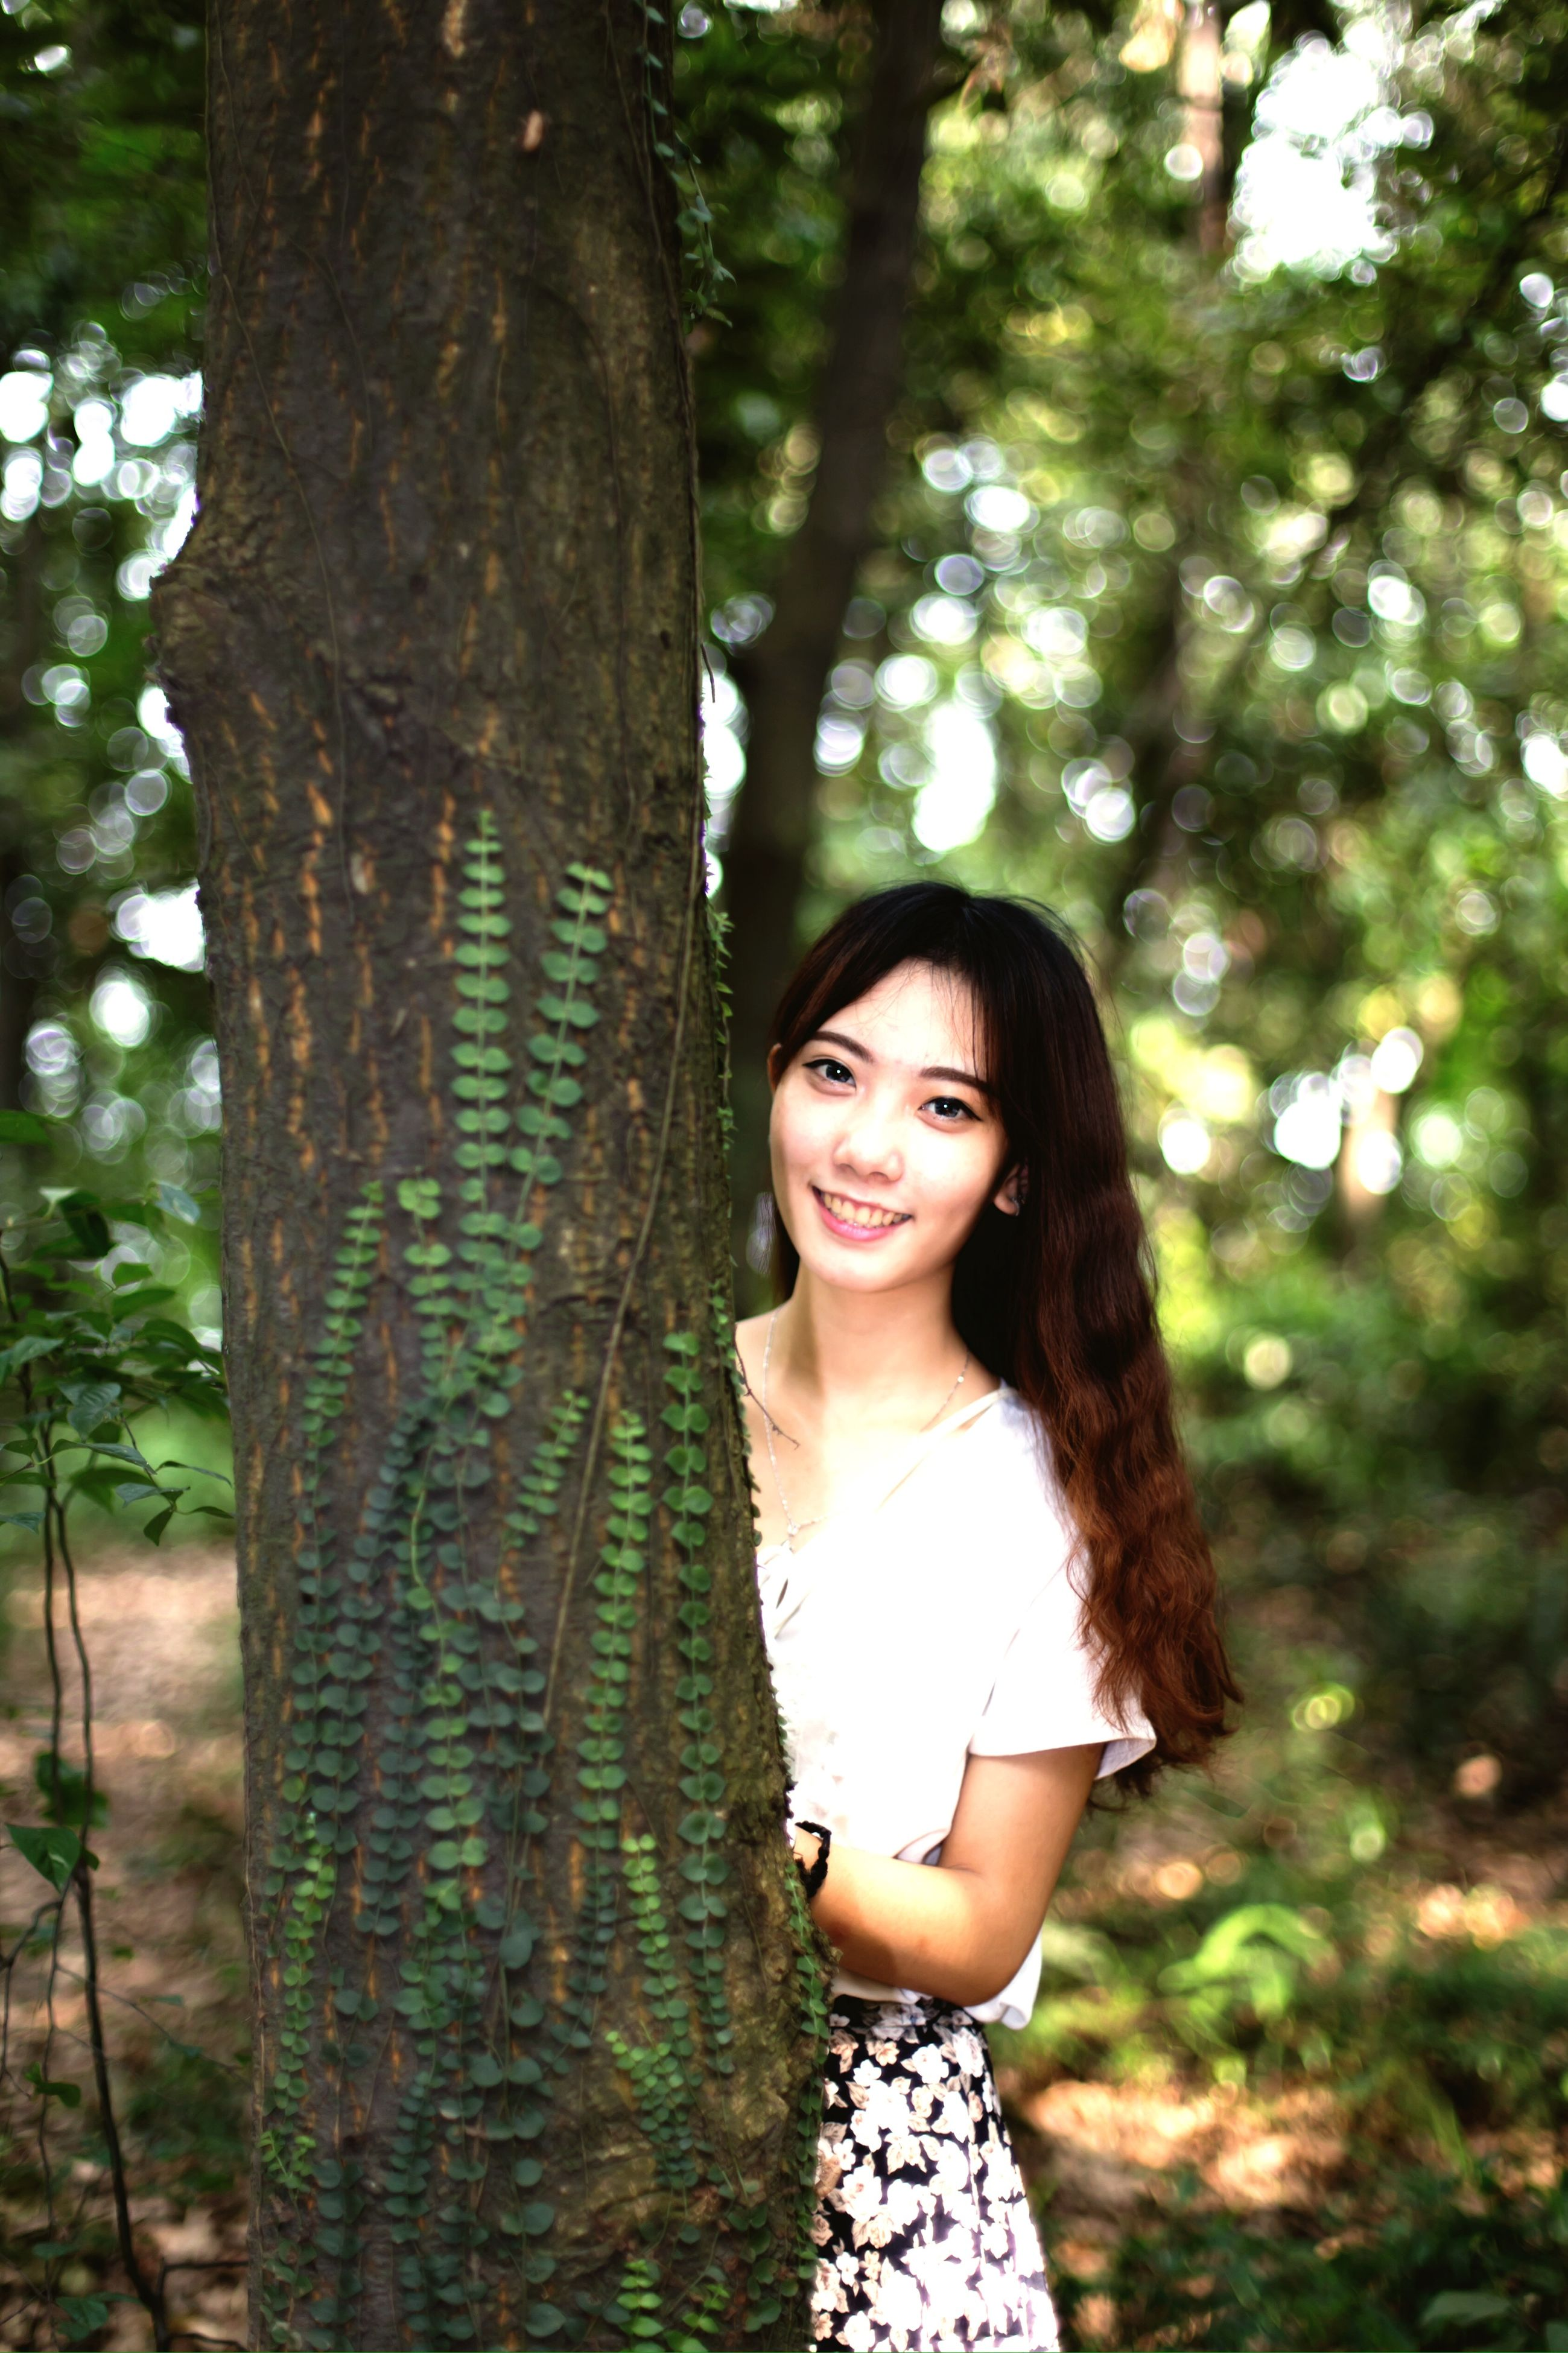 young adult, young women, tree, portrait, looking at camera, person, long hair, lifestyles, front view, leisure activity, focus on foreground, smiling, casual clothing, forest, tree trunk, beauty, standing